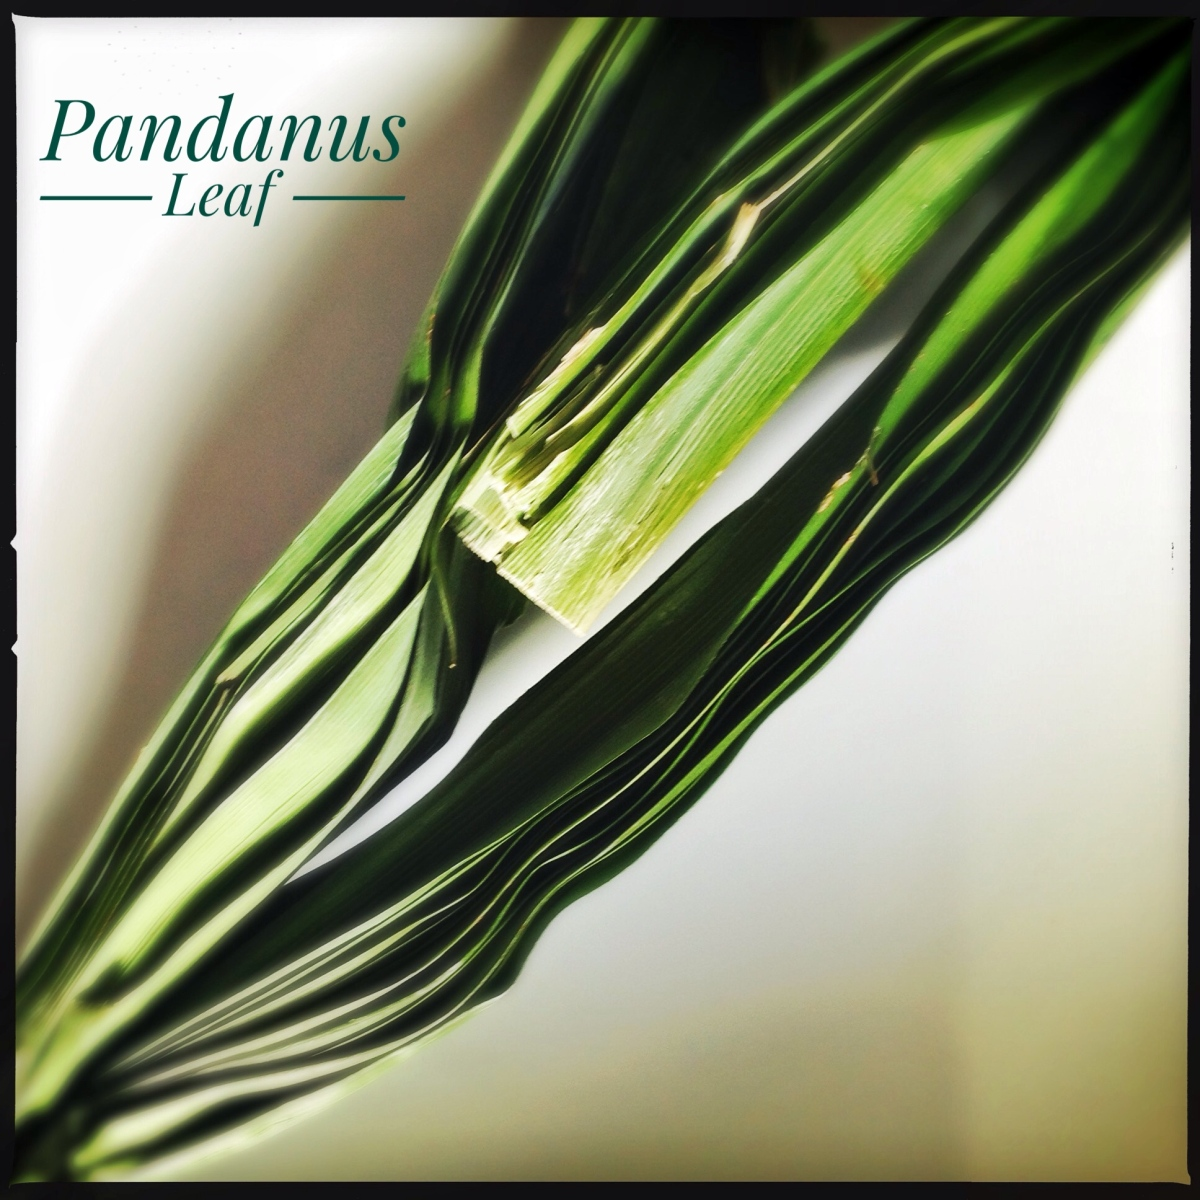 Ingredients: Pandanus | Pandan Leaf | Screwpine Leaf | Rampe | Kewra